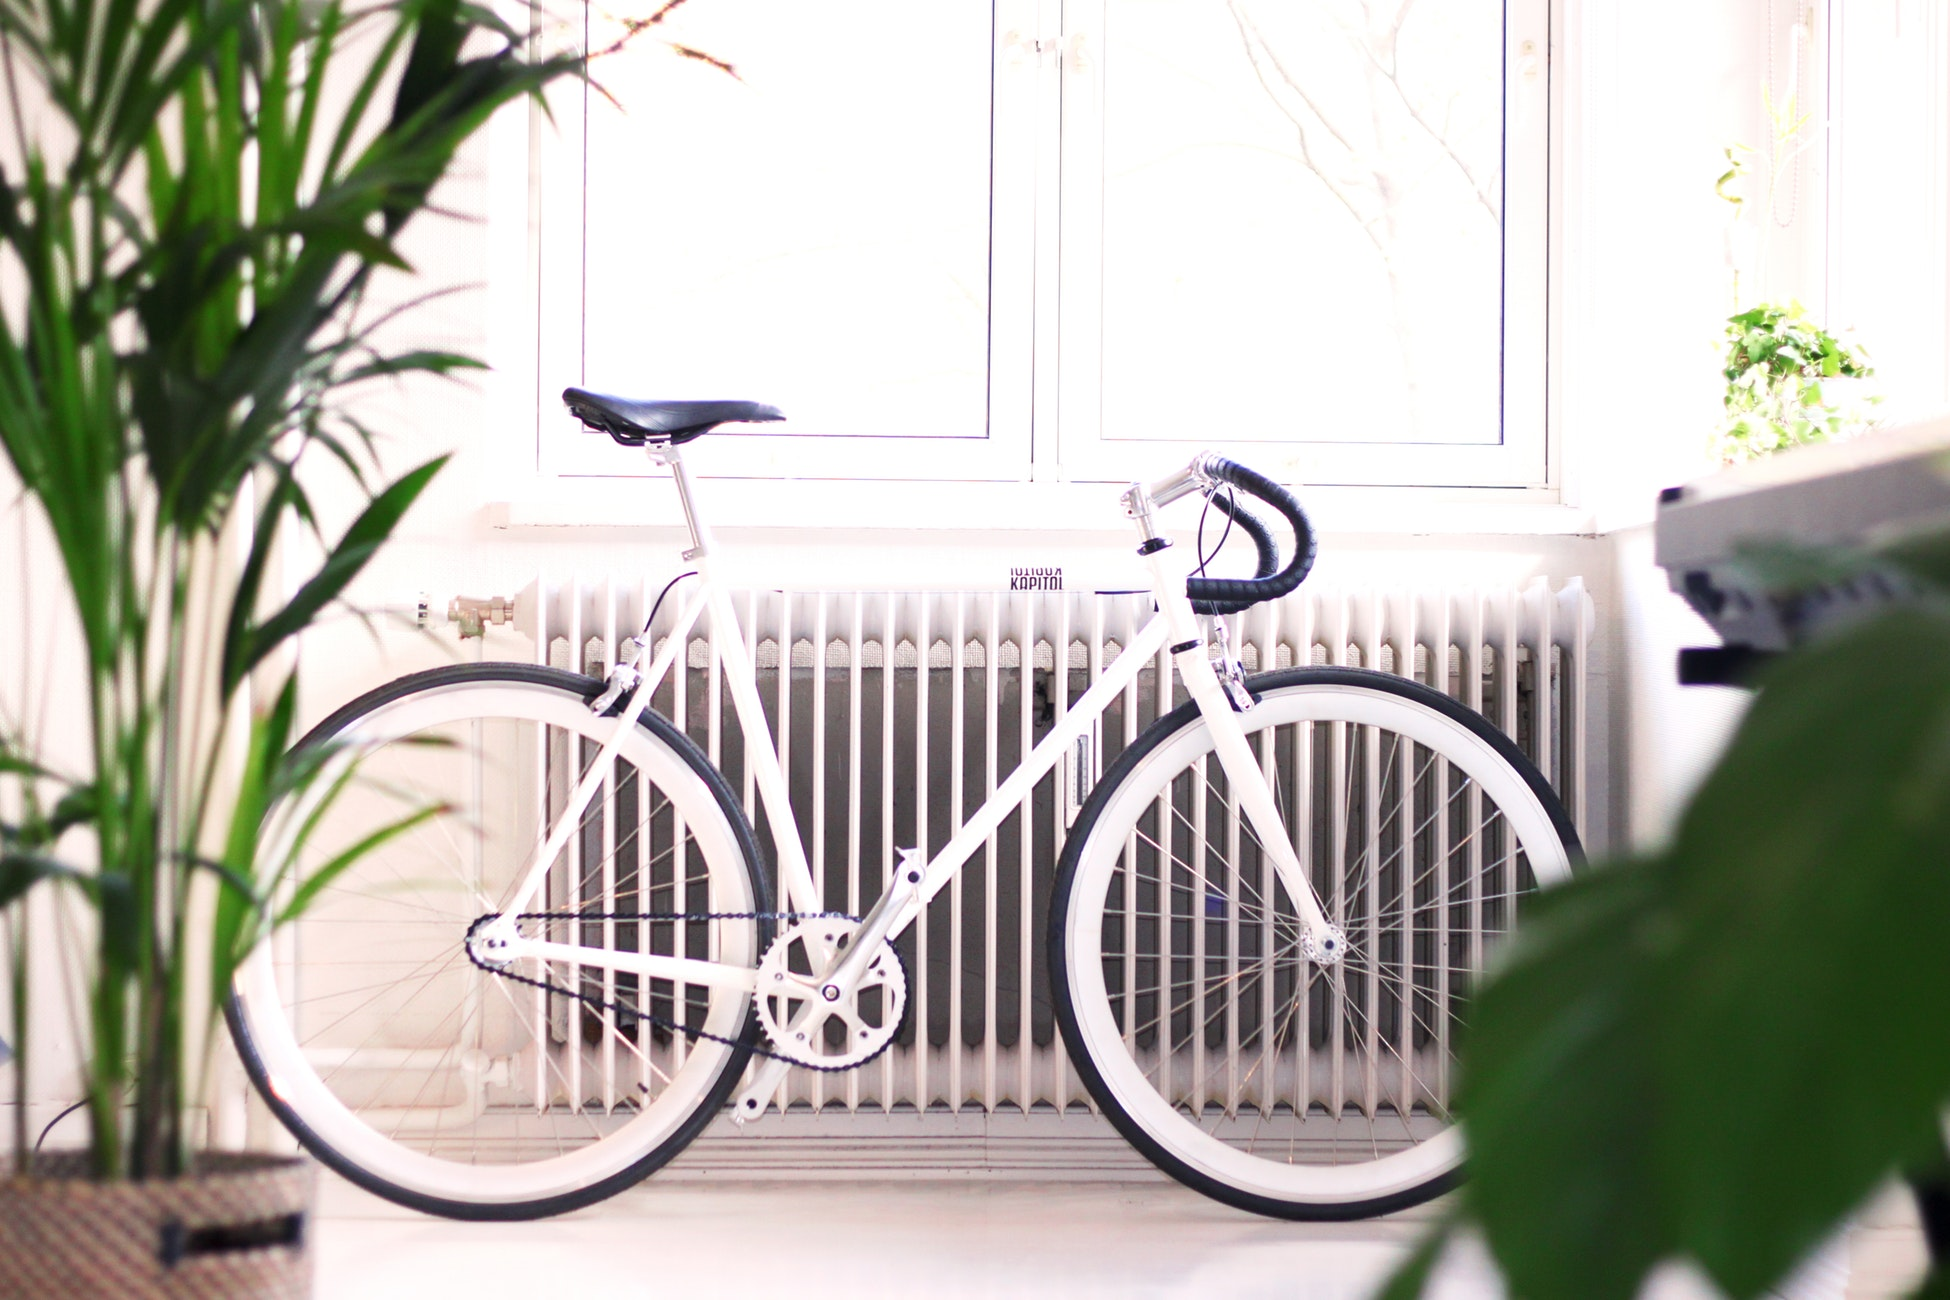 replacing our boiler - radiator with a bike in front of it